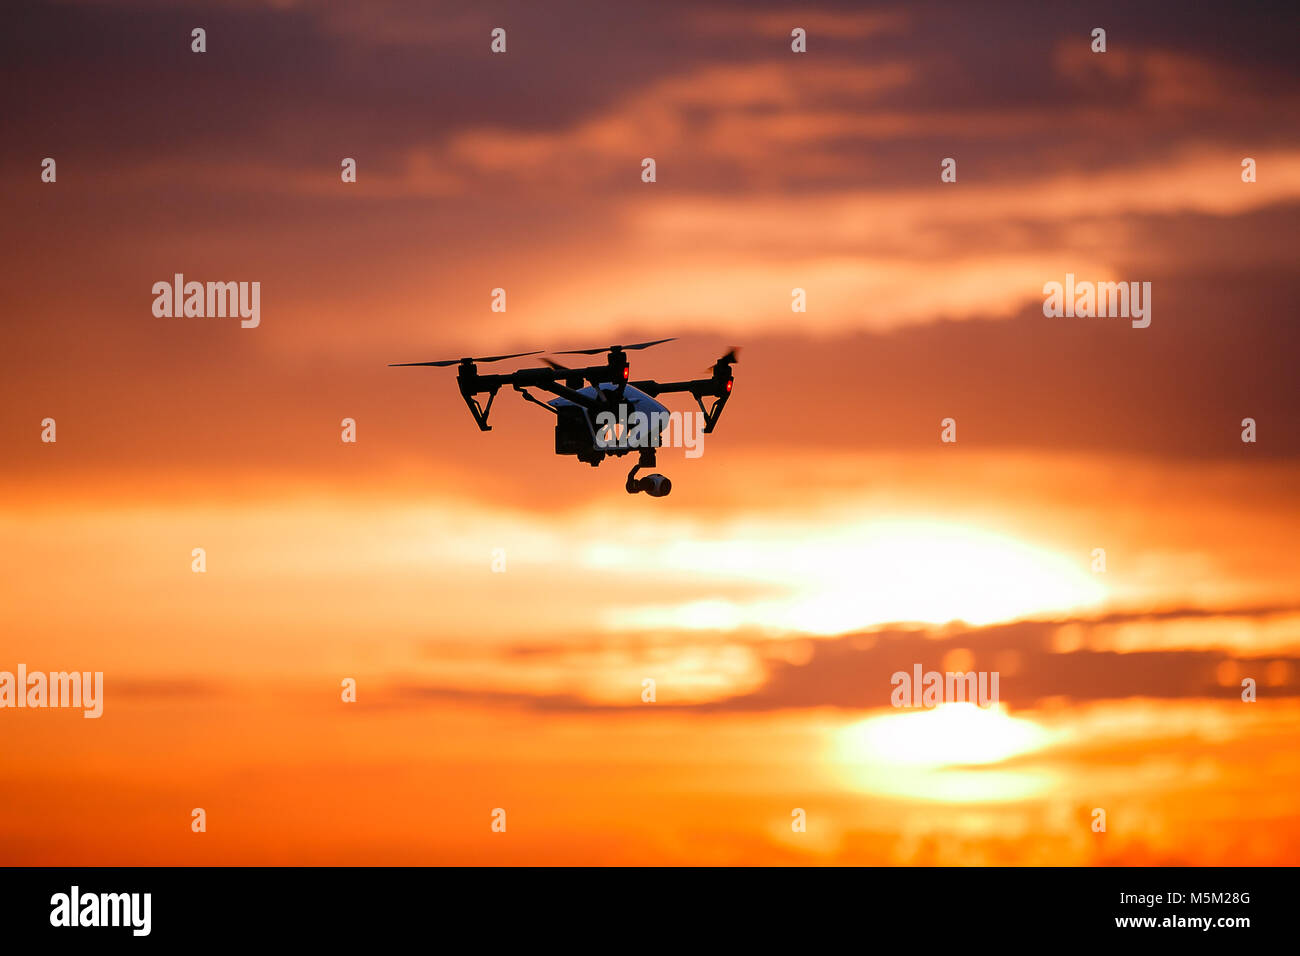 quadrocopter drone with remote control. Dark silhouette against colorfull sunset. Soft focus. Toned image - Stock Image